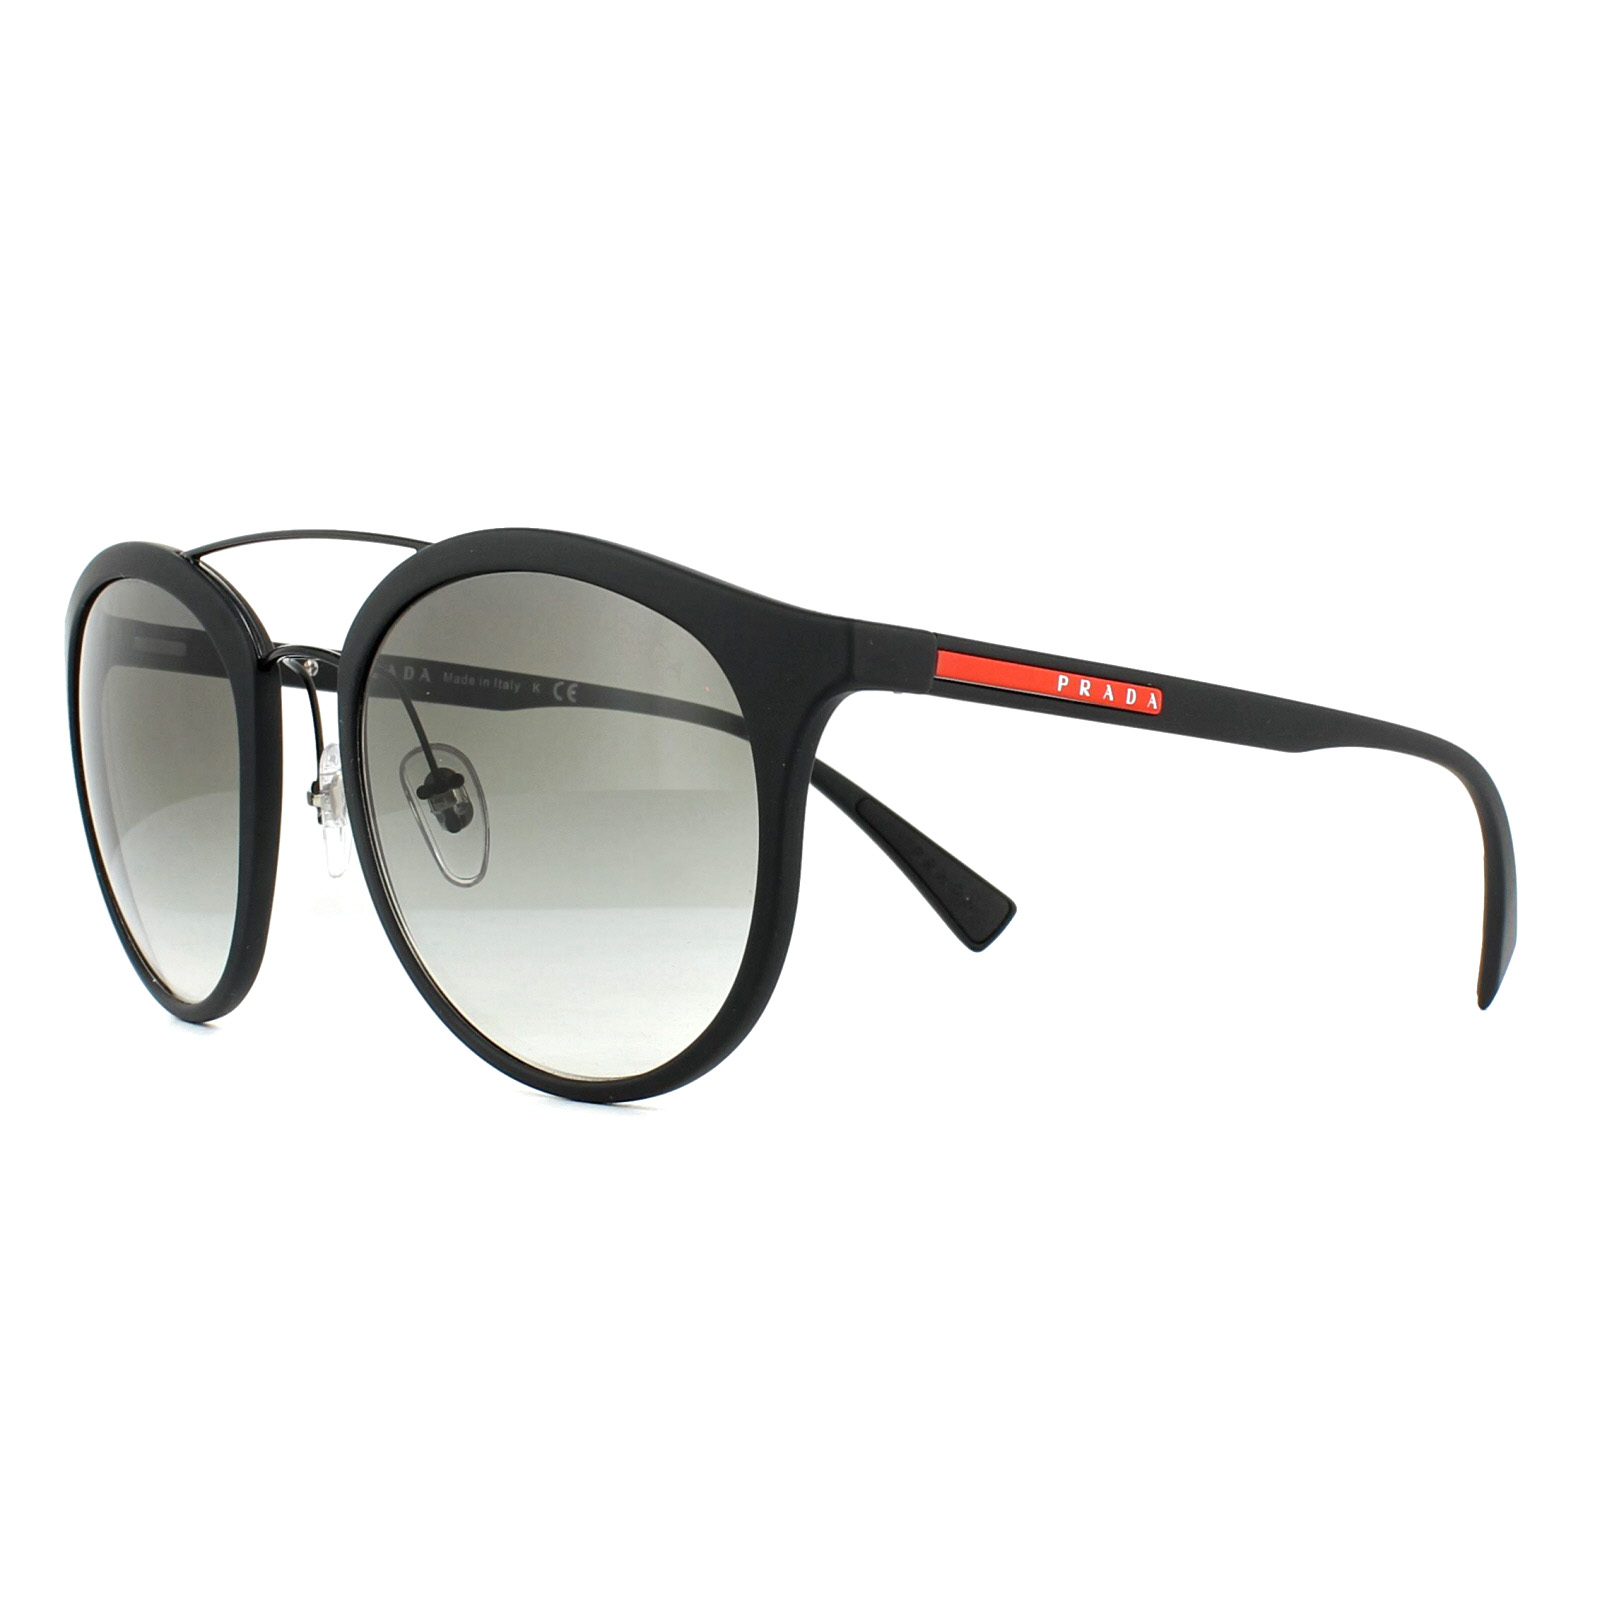 da8fb8e736b2 Sentinel Prada Sport Sunglasses PS04RS DG00A7 Black Rubber Grey Gradient.  Sentinel Thumbnail 2